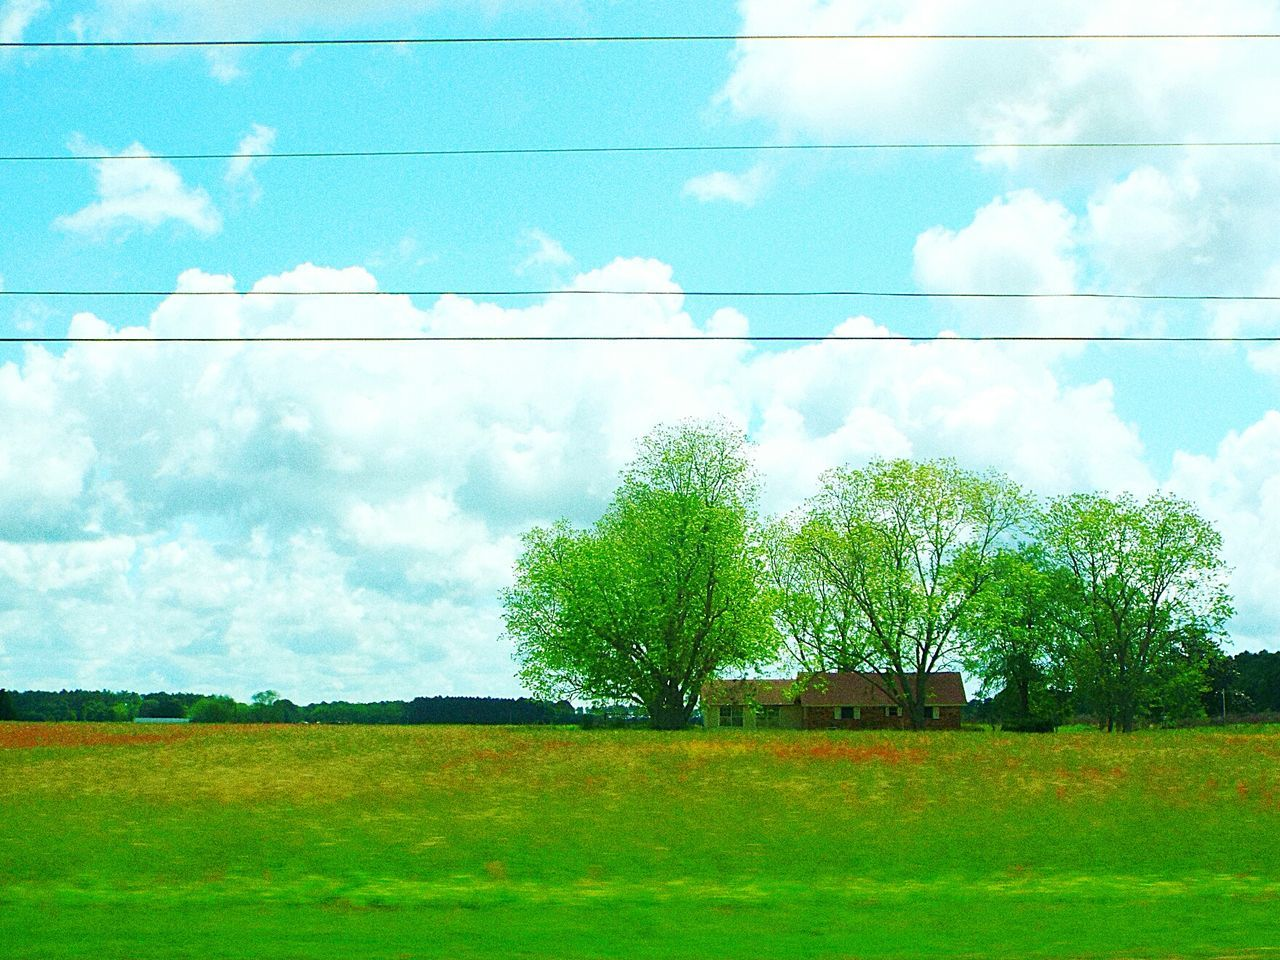 tree, day, no people, built structure, sky, nature, field, outdoors, green color, tranquility, grass, beauty in nature, architecture, cloud - sky, scenics, building exterior